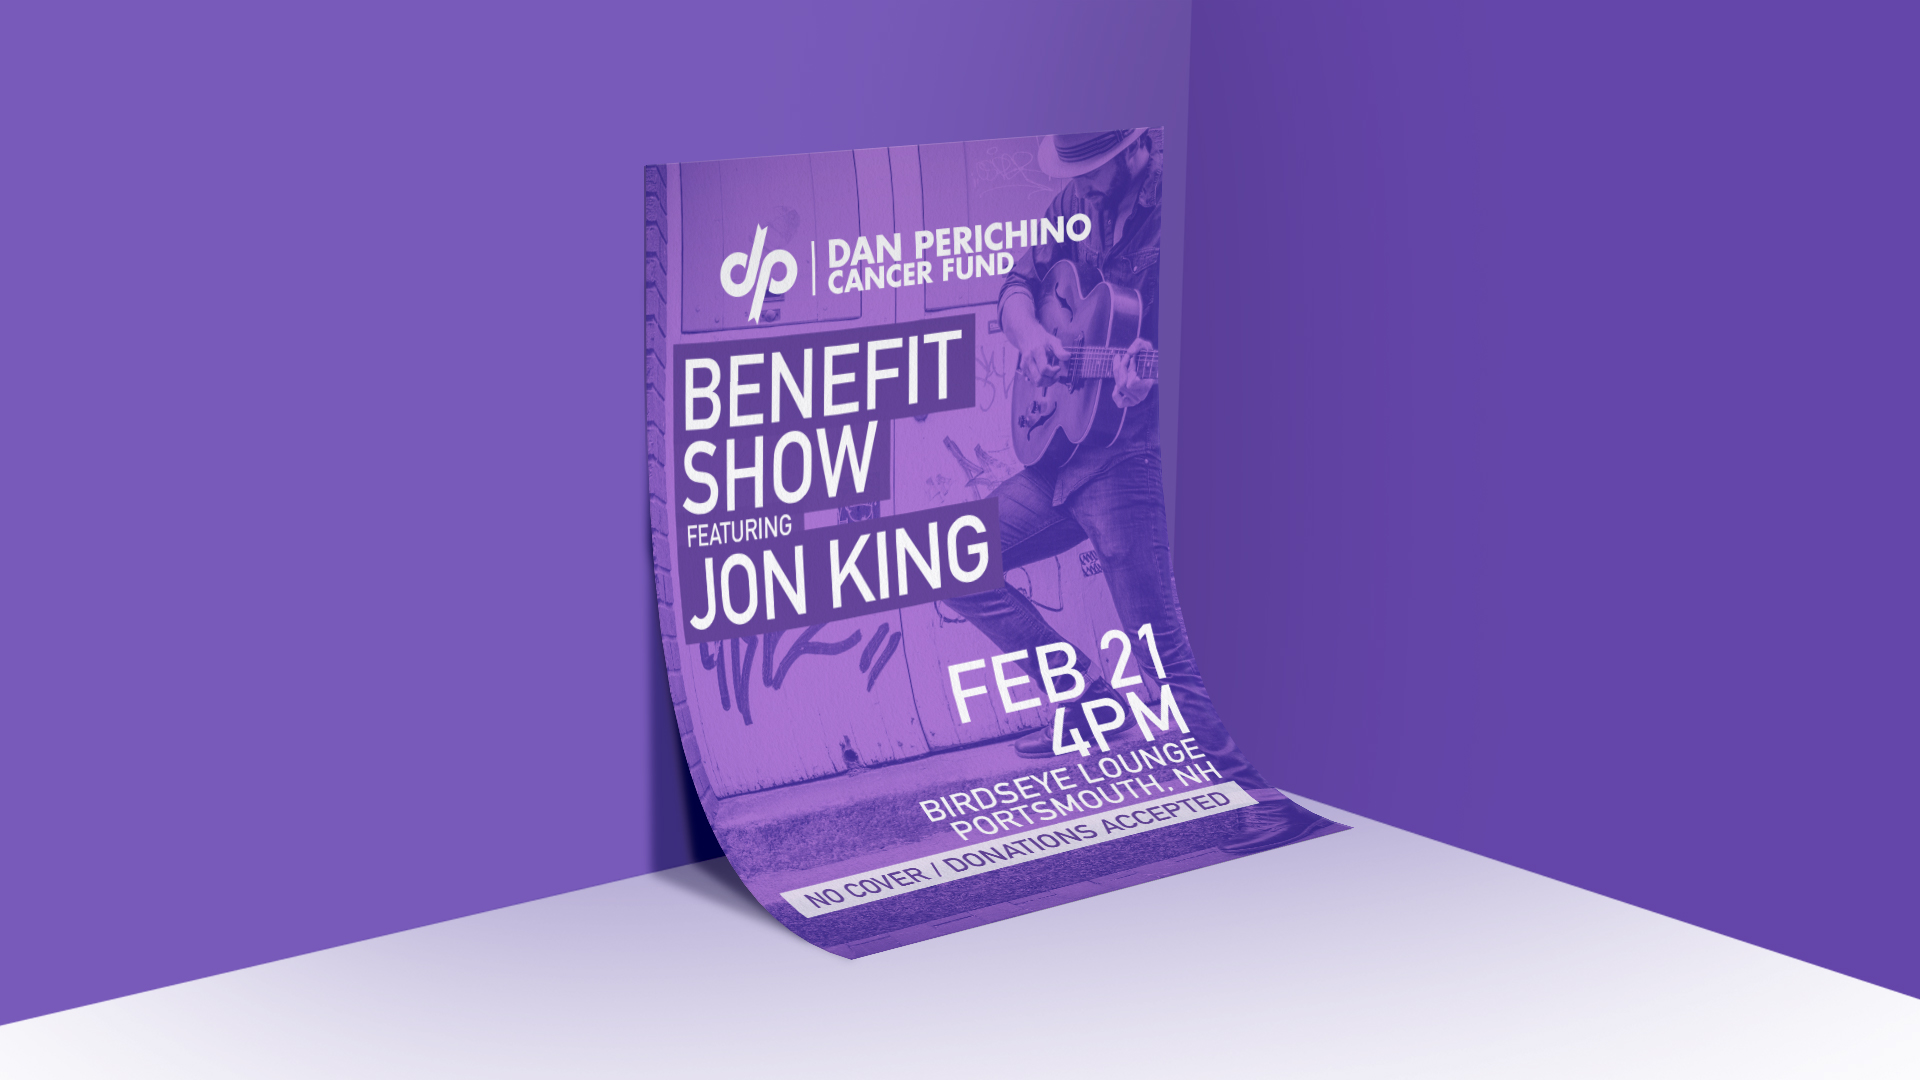 Dan Perichino Cancer Fund - Benefit Show Poster